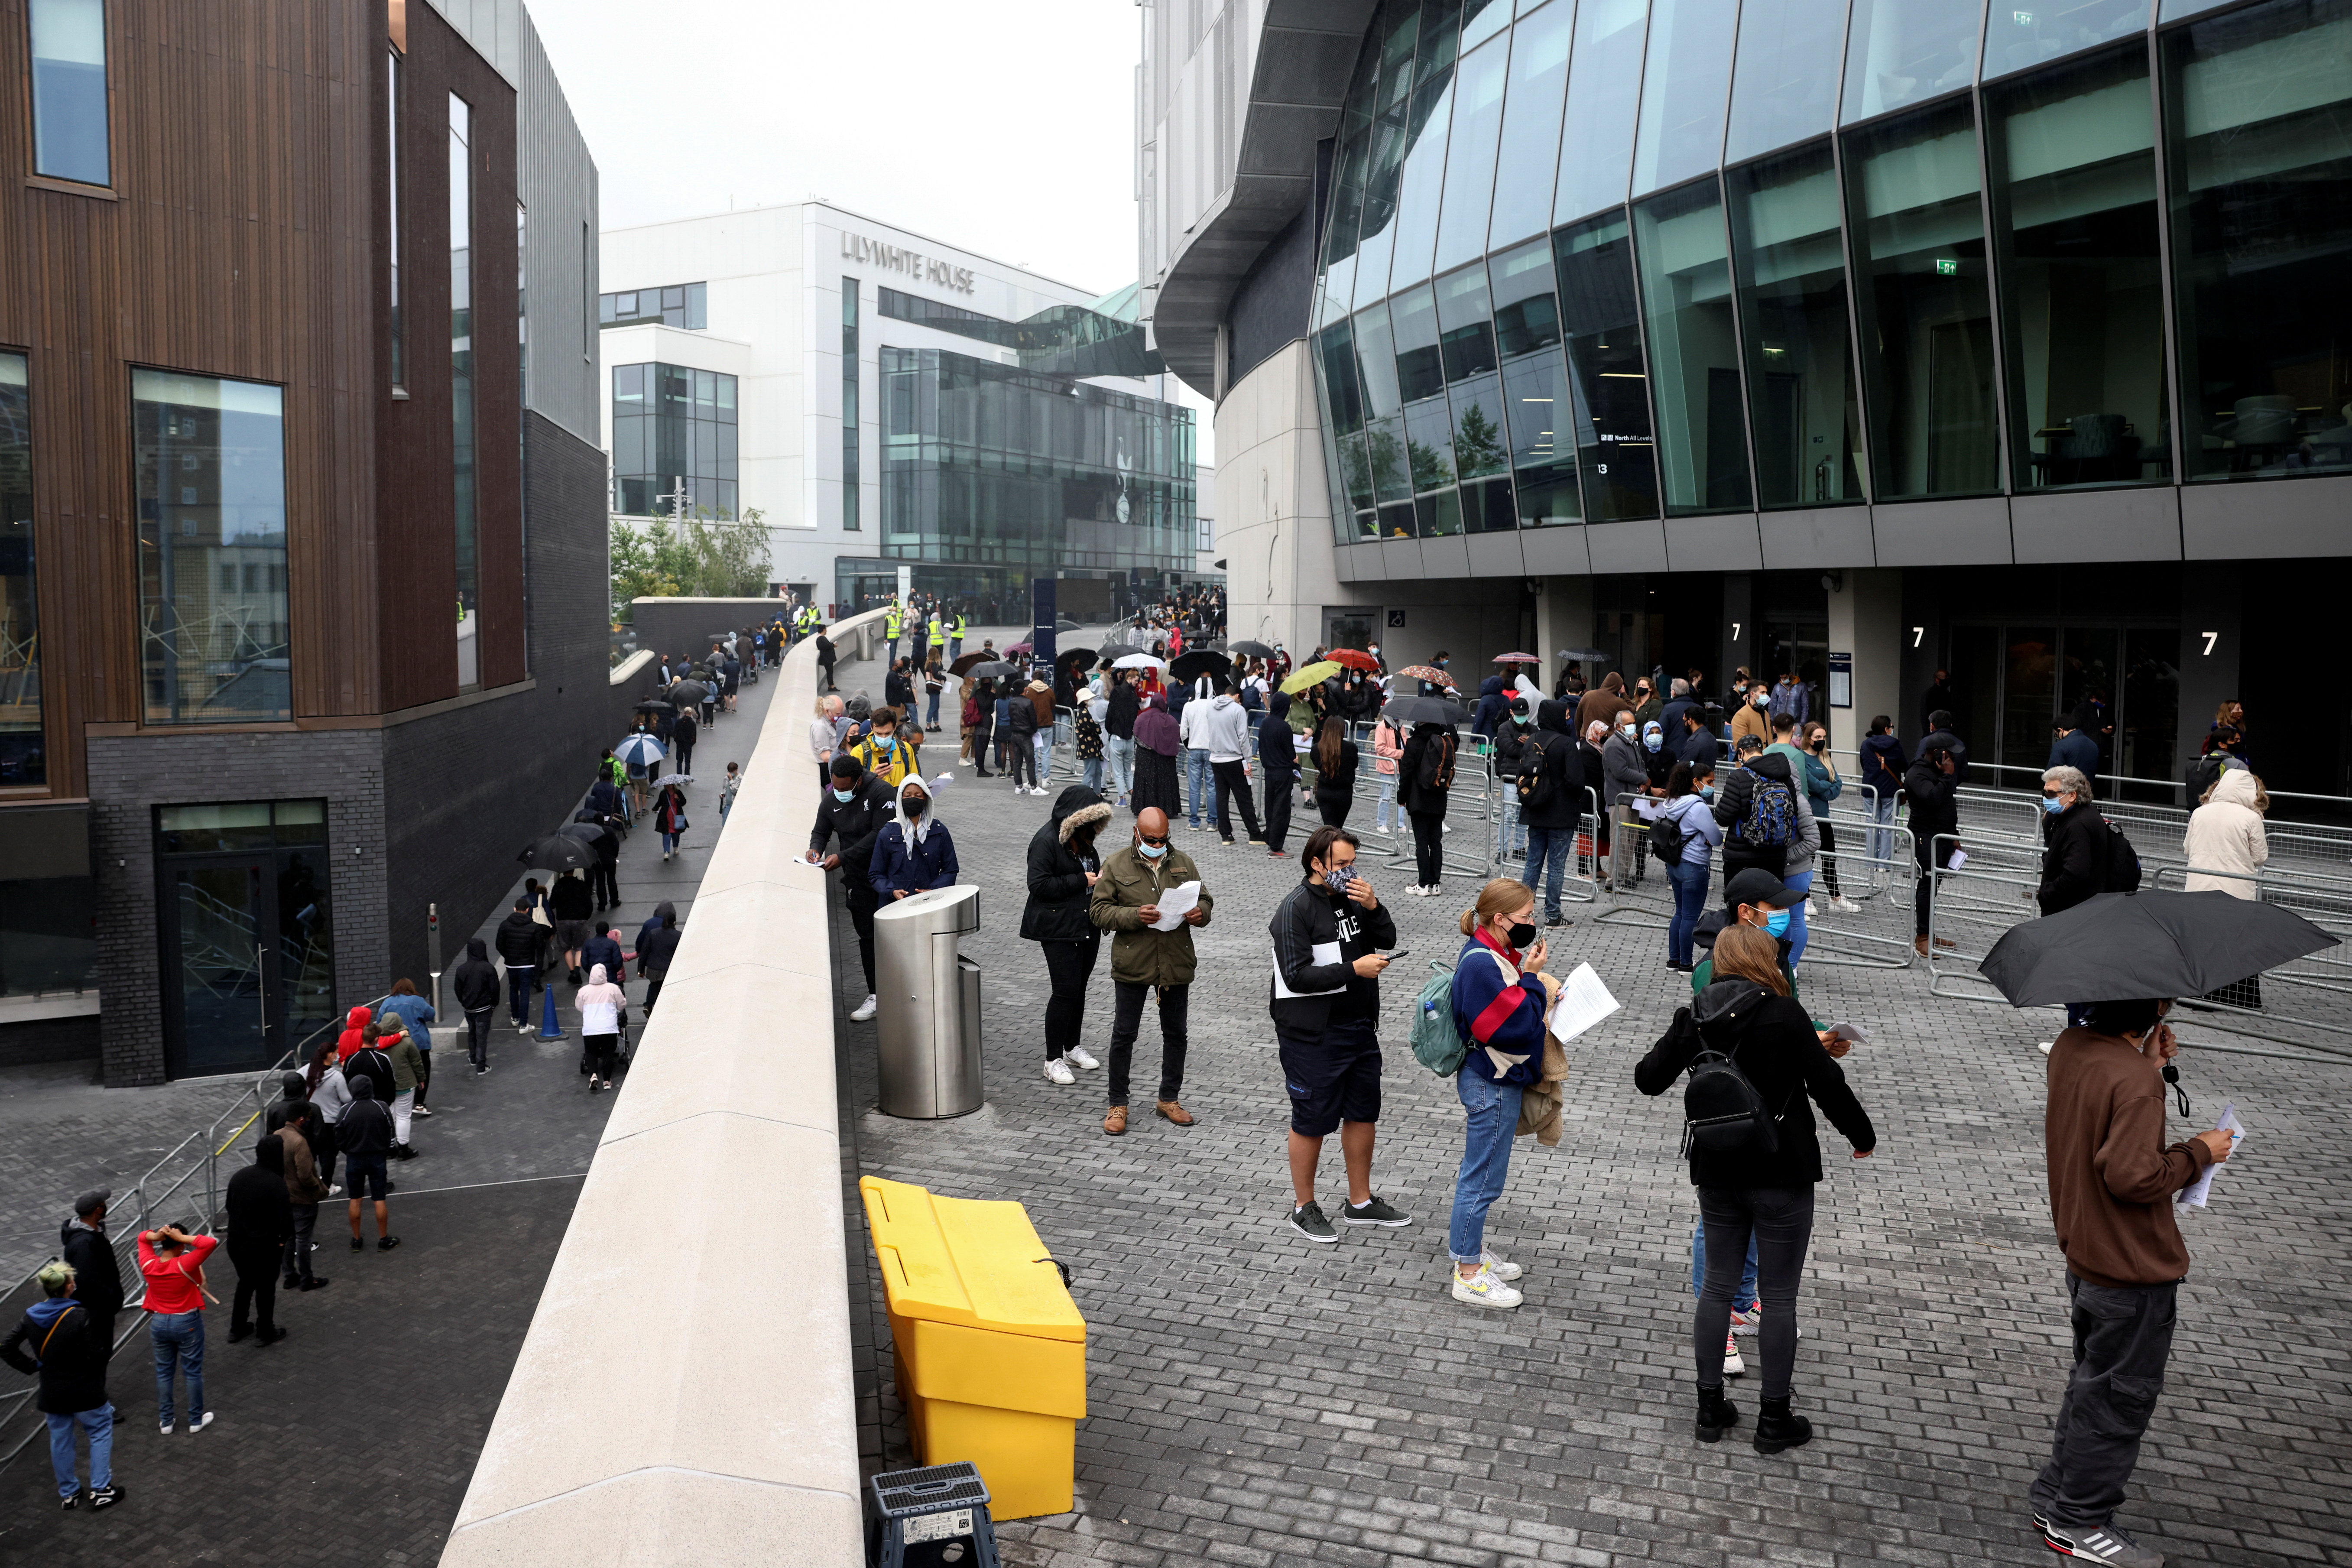 People queue outside a mass vaccination centre for those aged 18 and over at the Tottenham Hotspur Stadium, amid the coronavirus disease (COVID-19) pandemic, in London, Britain, June 20, 2021. REUTERS/Henry Nicholls